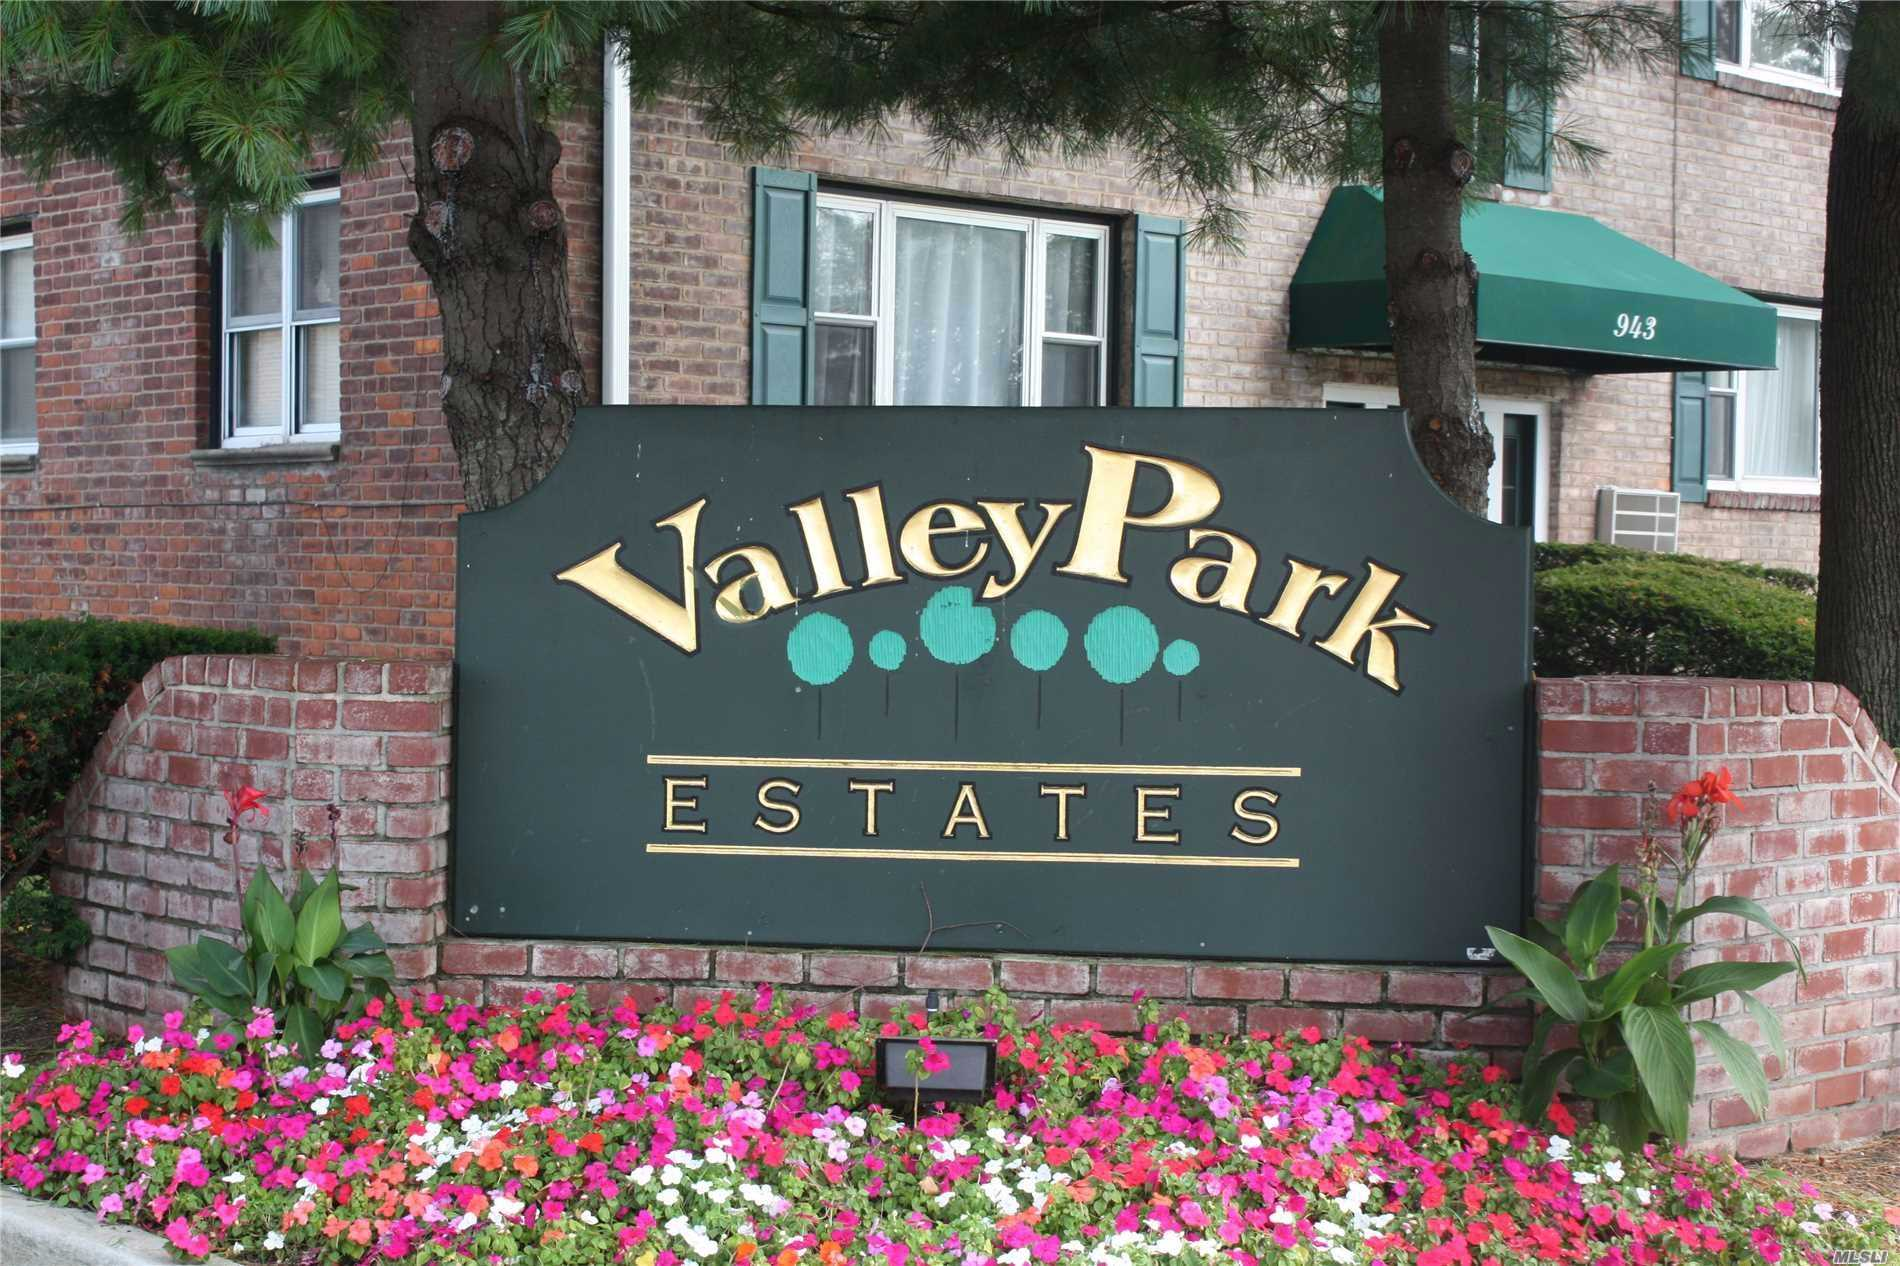 Pristine Valley Park Estates...1 Bdrm Upper Nestled On Tree Line Block. Updated Kit & Bath. Bright/Sunny/Airy. . 2 On-Site Laundry Rooms. Close To Schools, Parkways, Board Requires Credit Score Of >675 & 20% Down. Income Requirement-Maint. & Mortgage Not Exceed 35% Of Income. Pet Friendly Property--1 Dog Under 35Lbs Permitted.